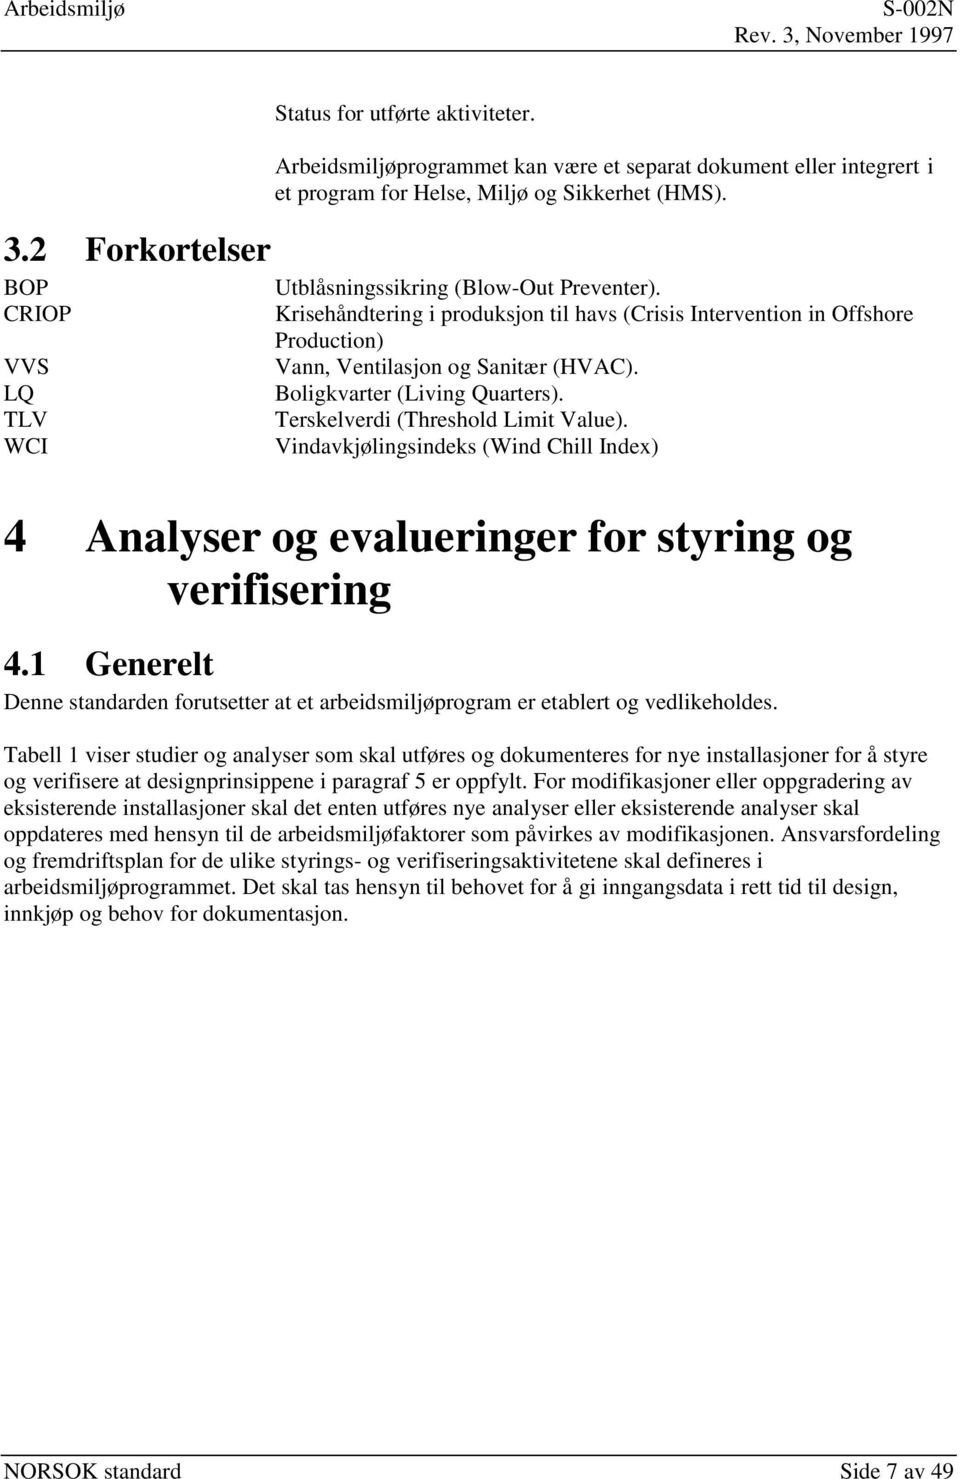 Terskelverdi (Threshold Limit Value). Vindavkjølingsindeks (Wind Chill Index) 4 Analyser og evalueringer for styring og verifisering 4.